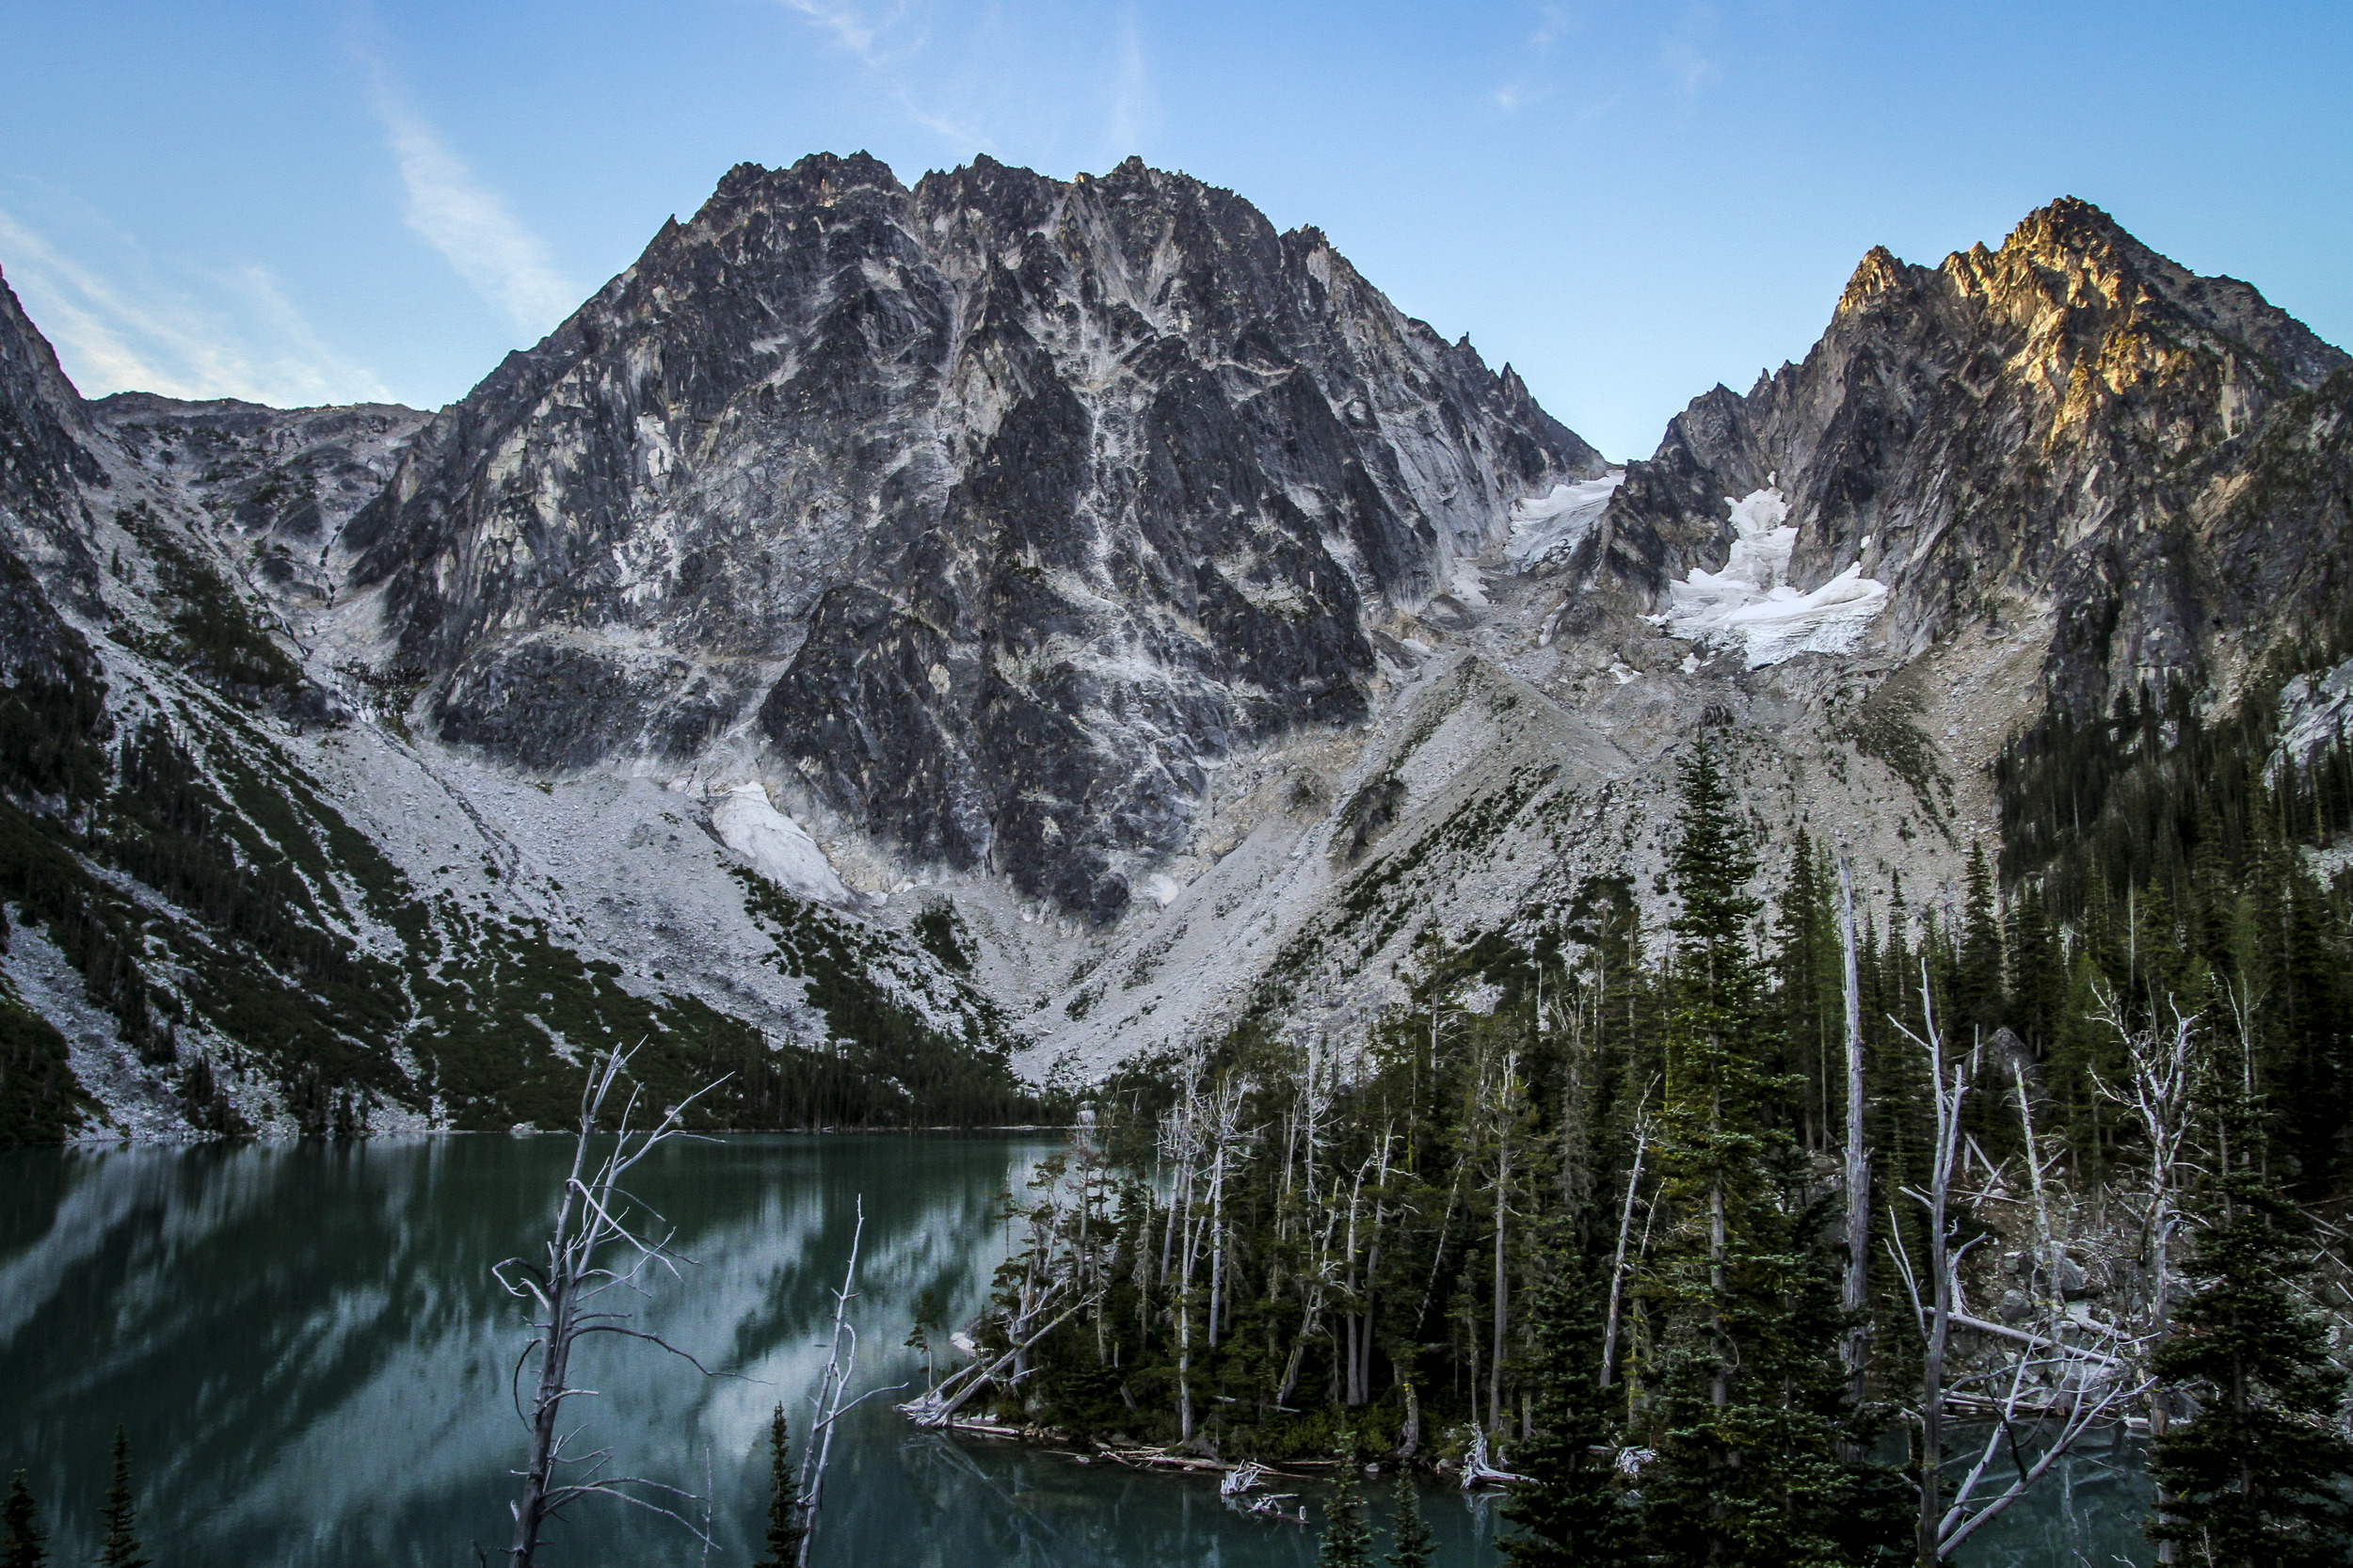 Alex and I did our second 18 mile hike of the summer through the Enchantments. 5am start, 6000ft vertical gain, and an 8 mile hitchhike back to the car.